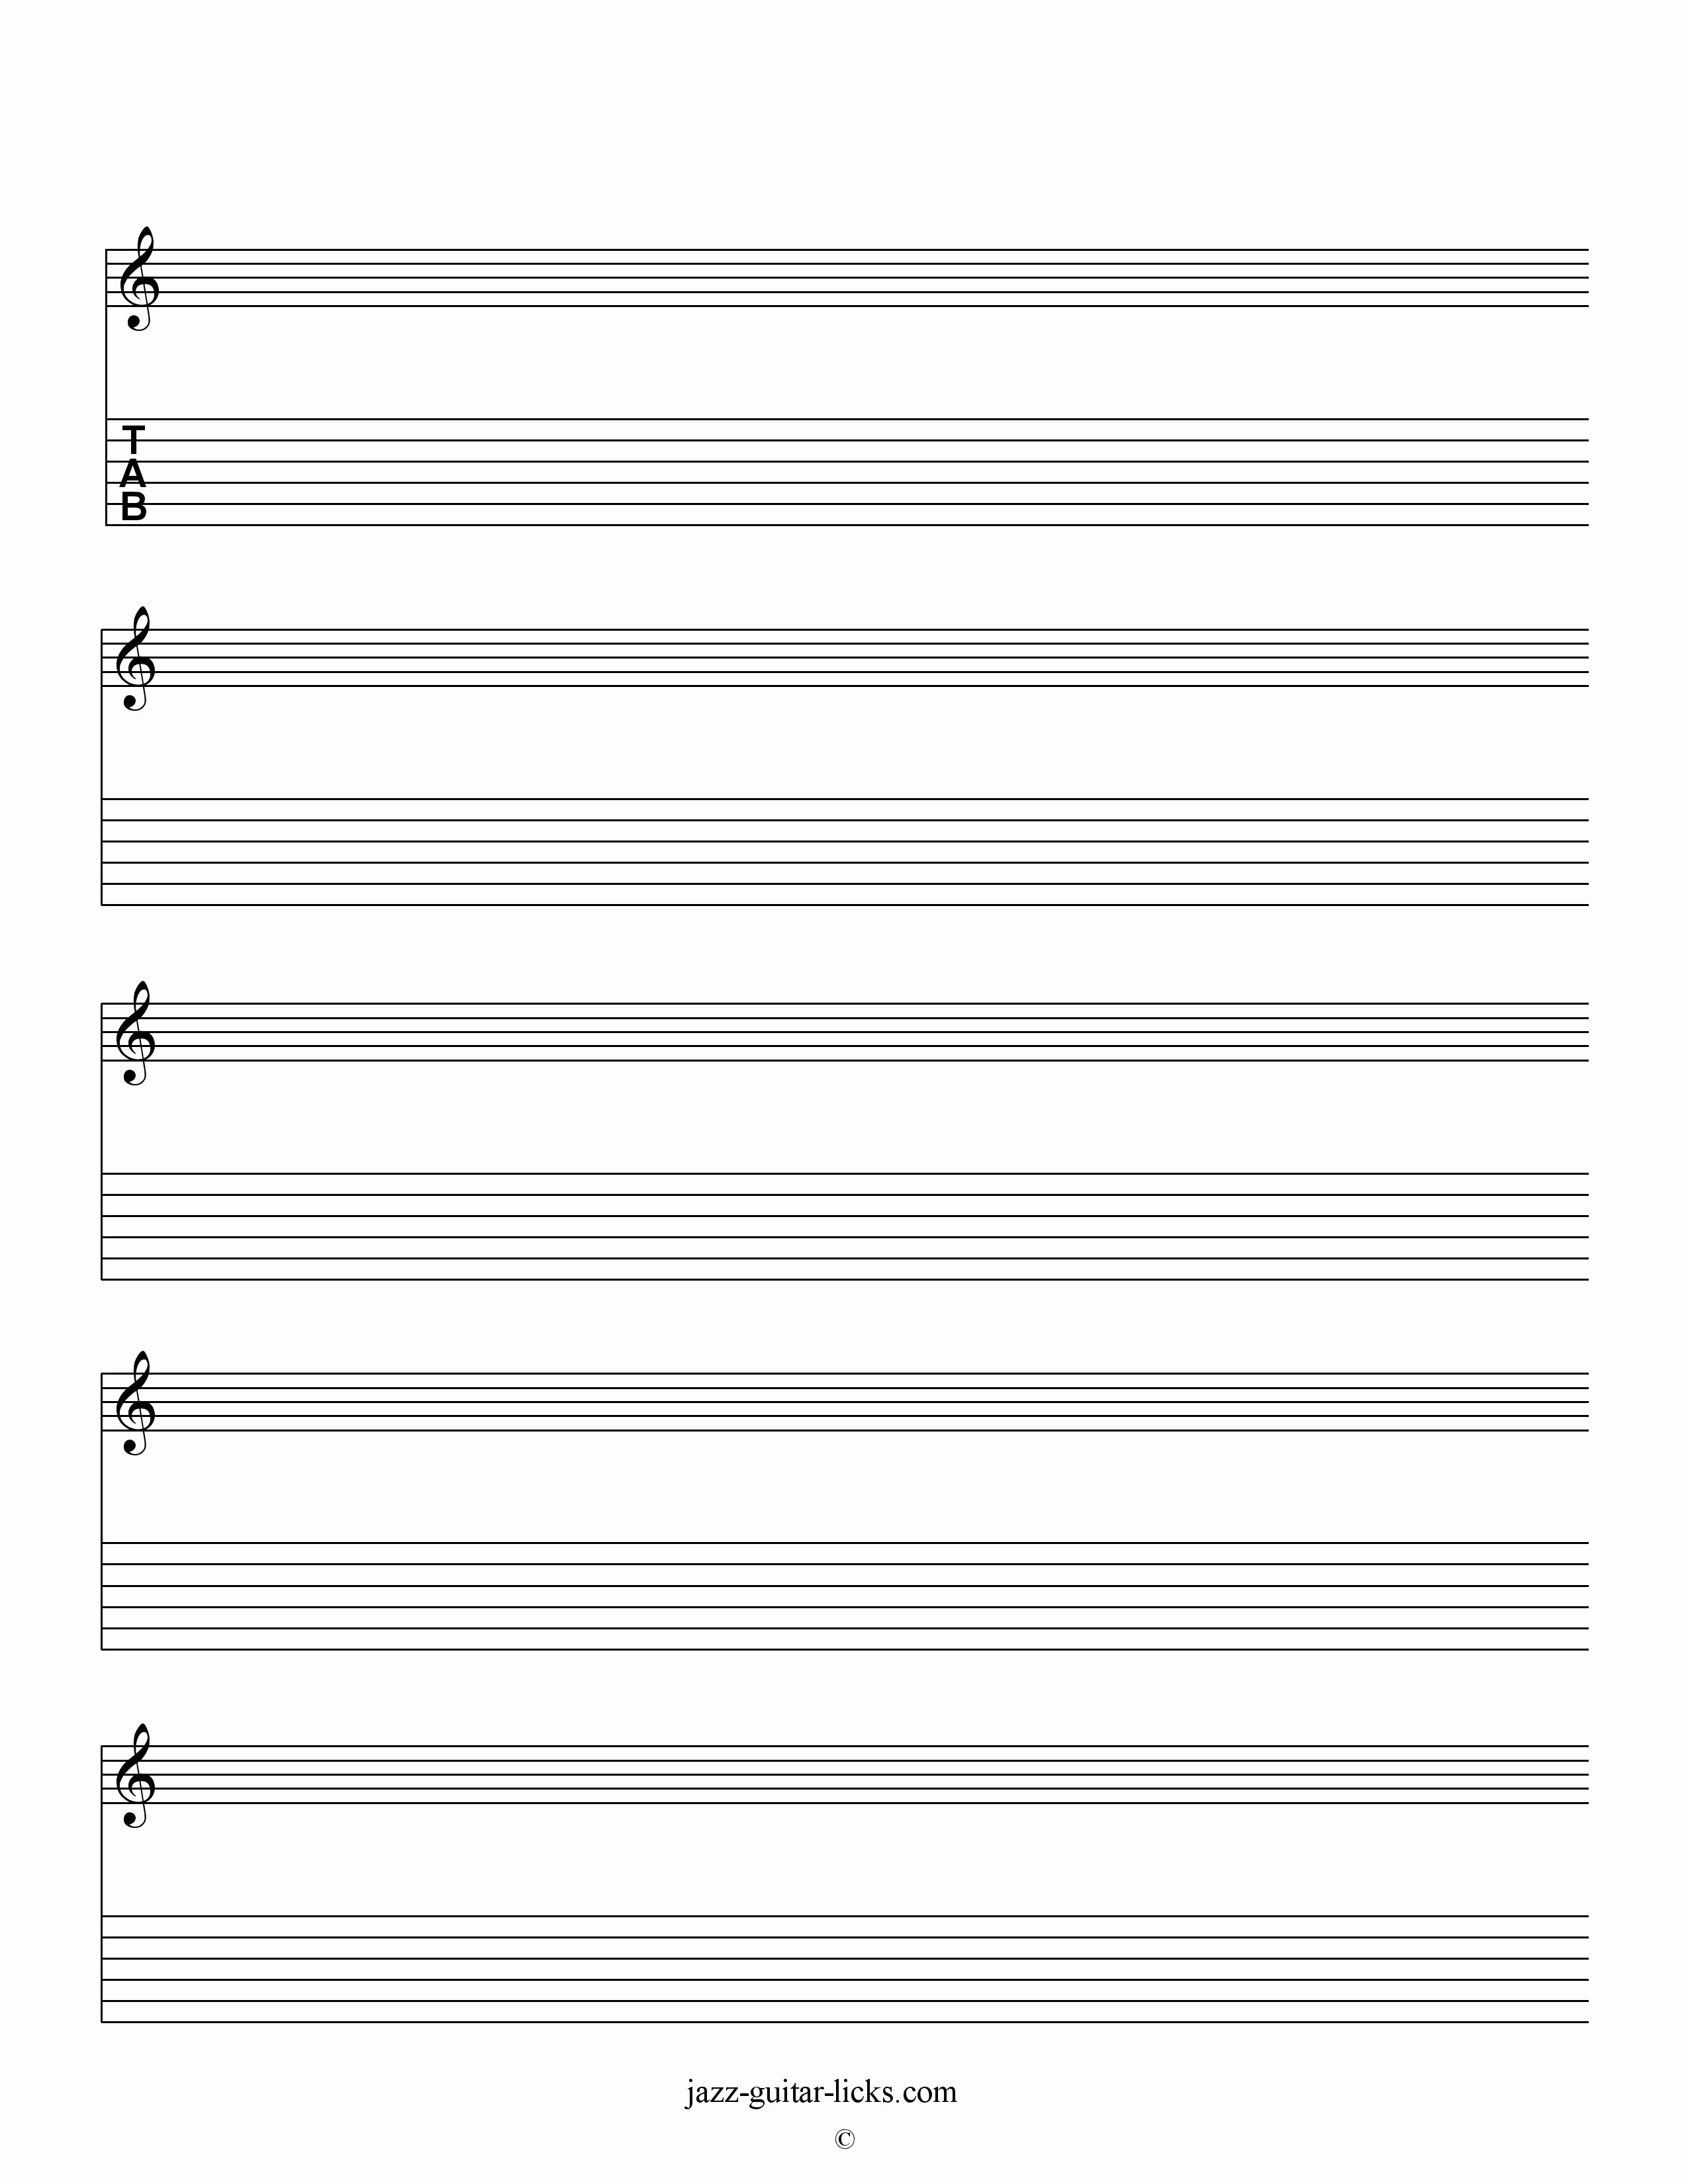 Blank Guitar Tab Pdf Best Of Printable Blank Staves and Tabs Free Music Sheet